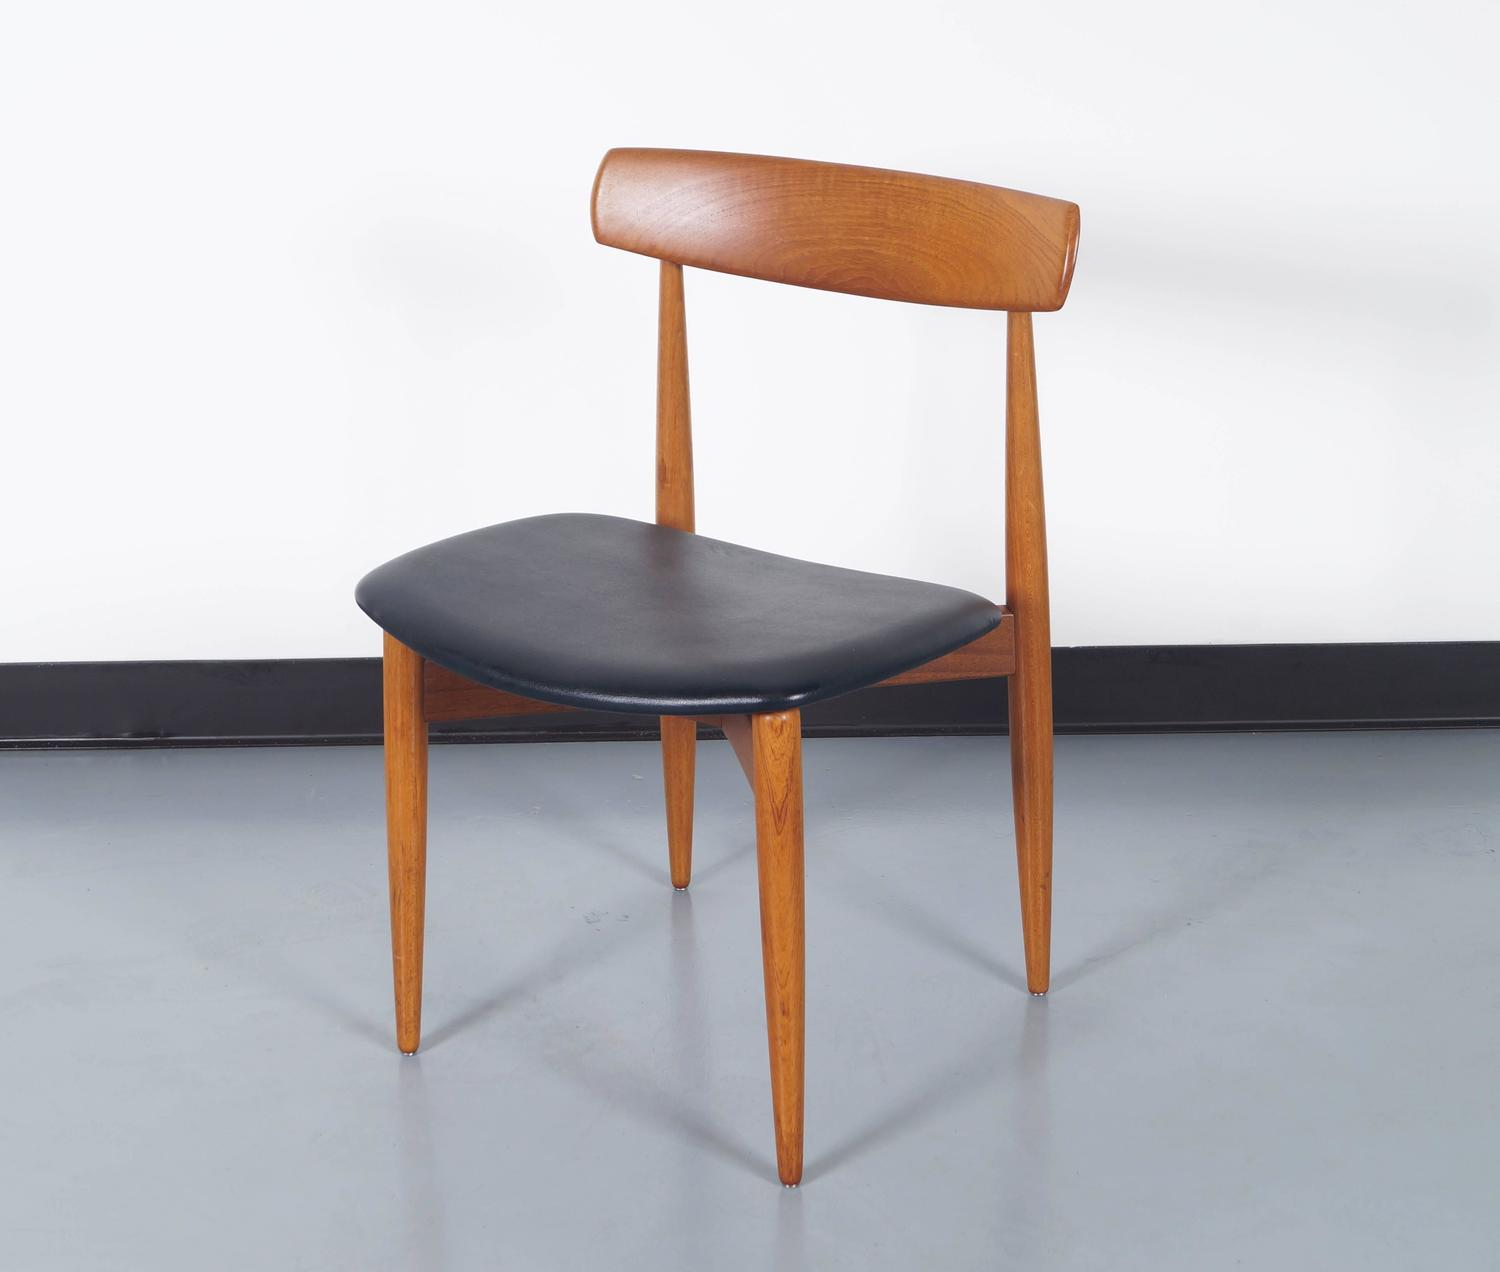 Danish Teak Dining Chairs by H W Klein For Sale at 1stdibs